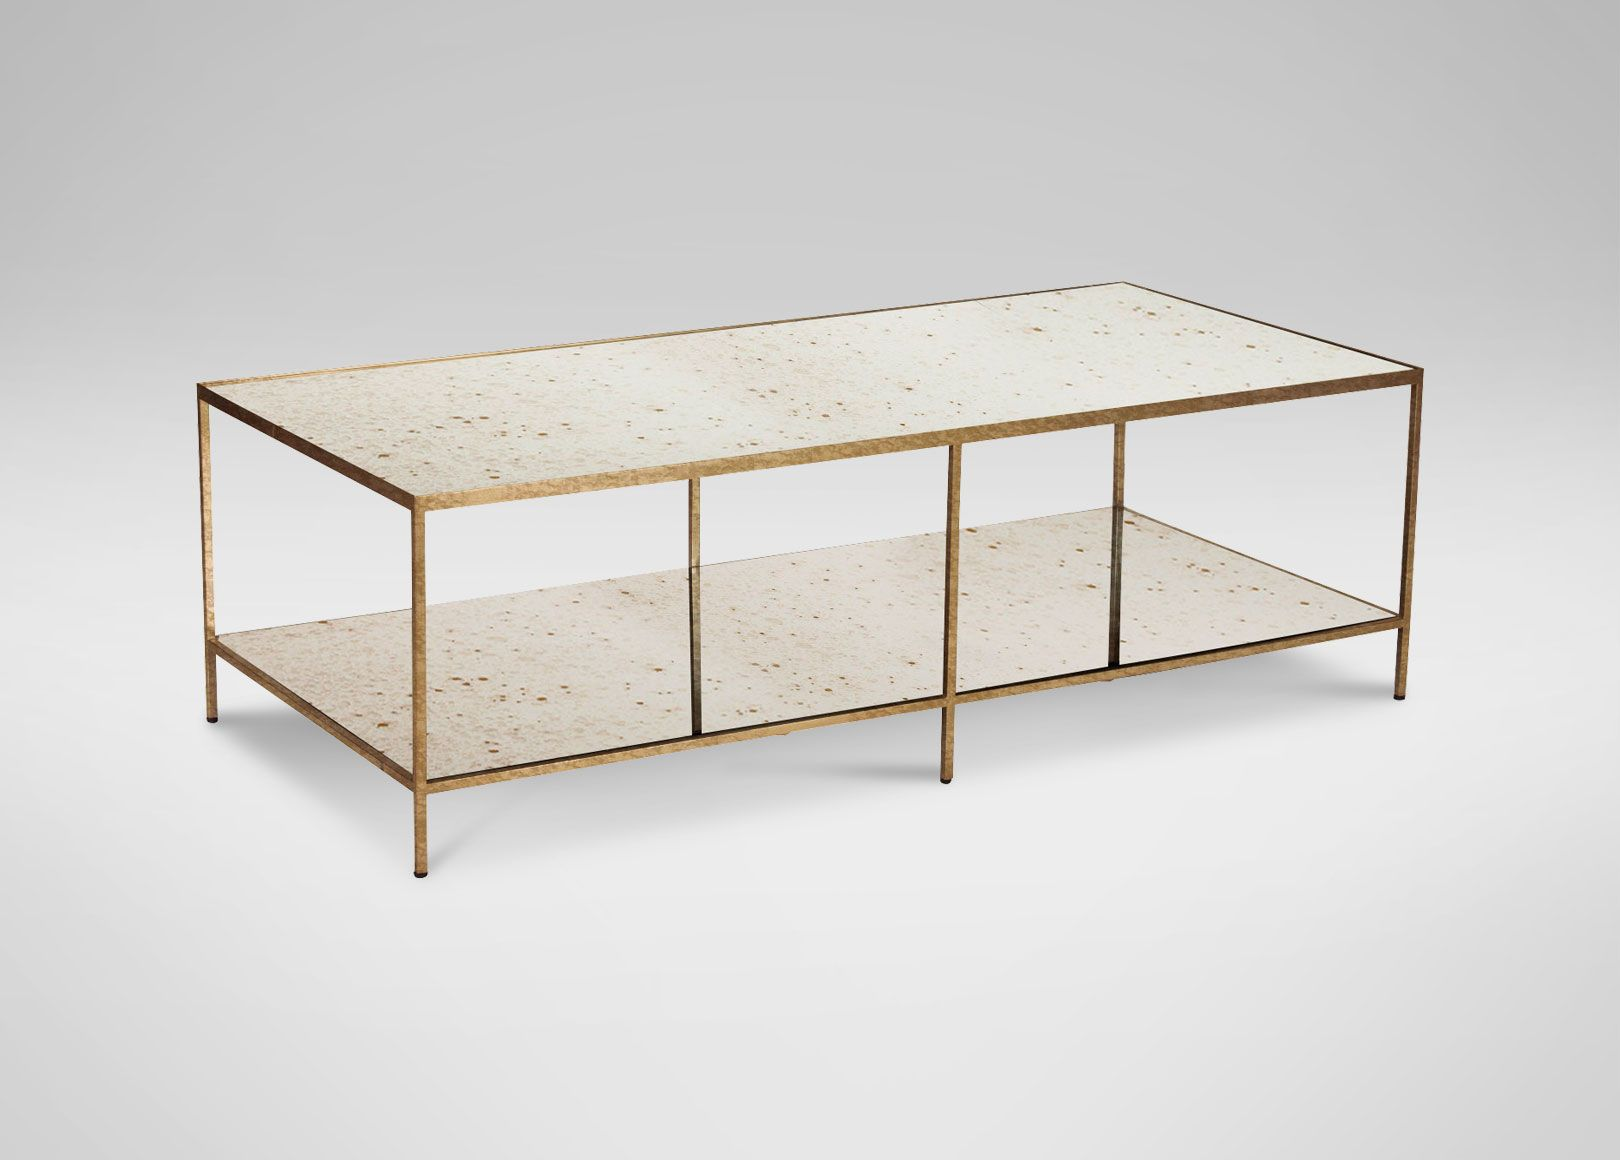 Ethan Allen Zachary Coffee Table In 2021 Coffee Table Furniture Living Room Coffee Table [ 1160 x 1620 Pixel ]